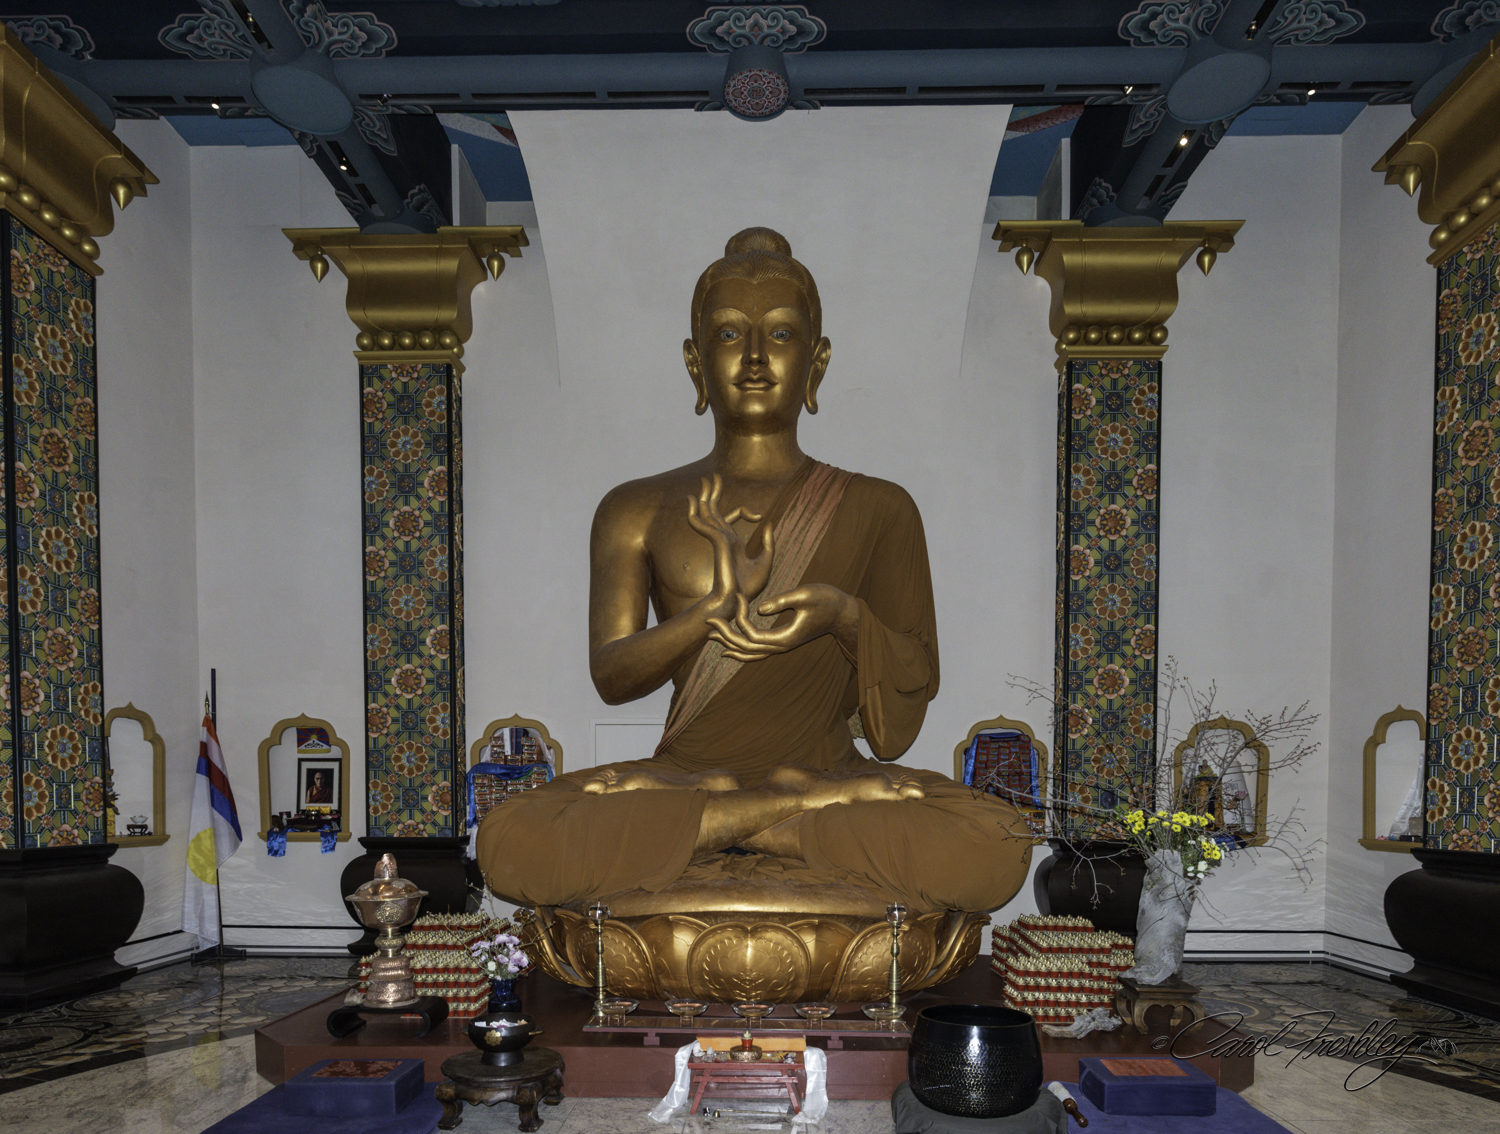 We waited quite a while for the room to be empty so we could walk closer to the front and around the sides without distracting or disturbing any person who had come to meditate. Notice the small alcoves around the room. Each one had different items, as shown below.